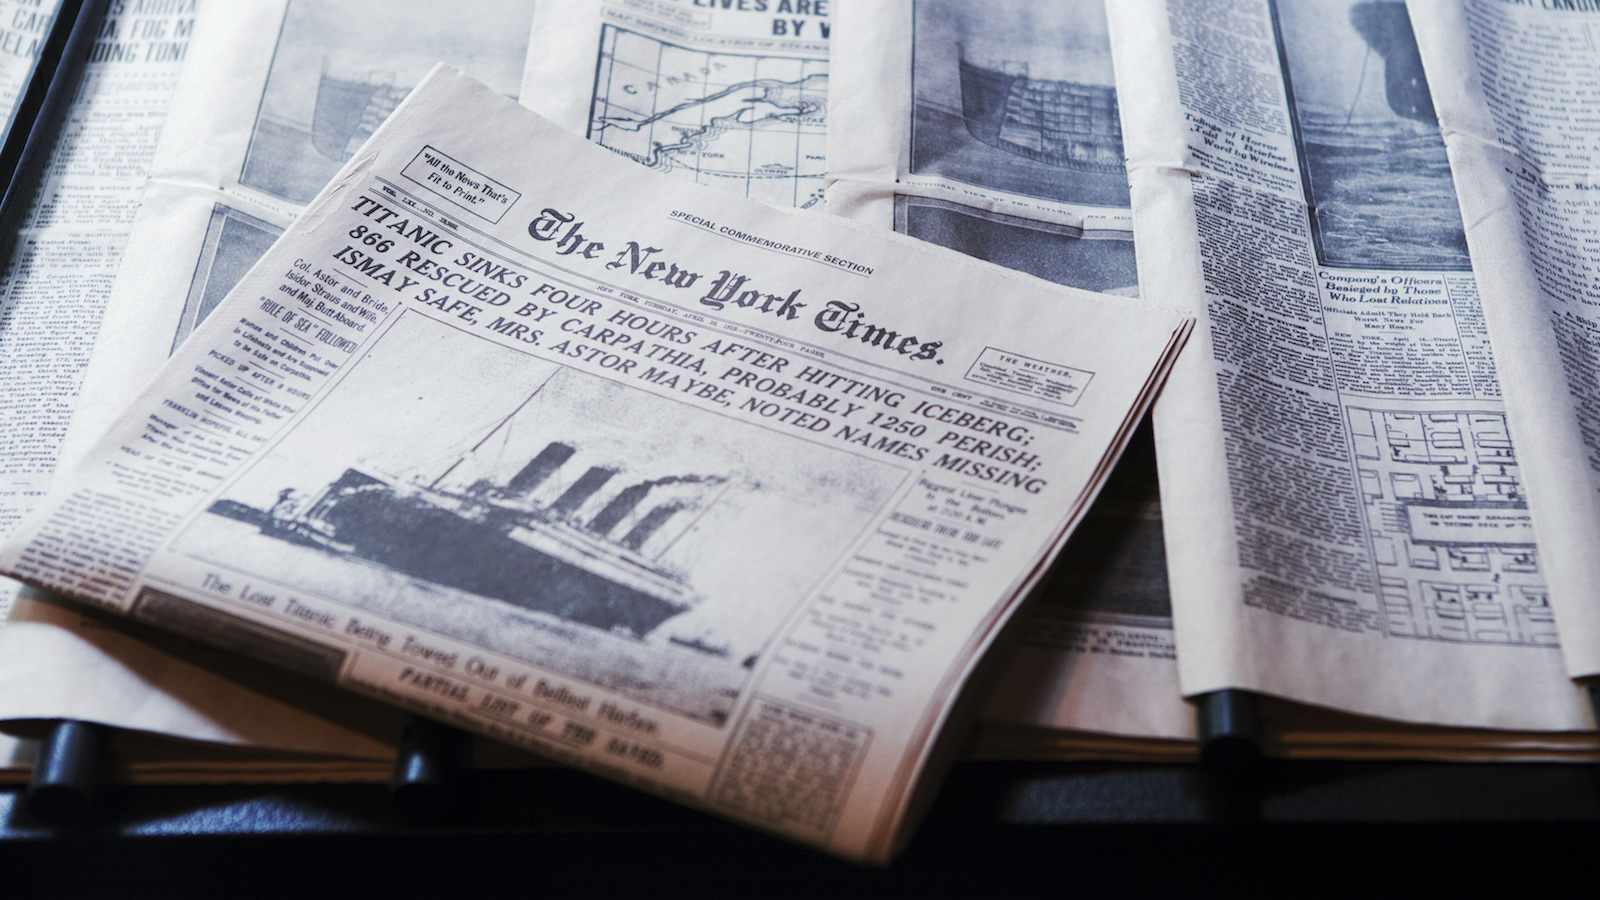 Copies of original newspapers describing the sinking of the Titanic rest in an exhibit at the South Street Seaport Museum commemorating the 100th anniversary of the sinking of the Titanic in New York April 11, 2012. REUTERS/Lucas Jackson (UNITED STATES - Tags: DISASTER SOCIETY MARITIME TRANSPORT) - RTR30LTN